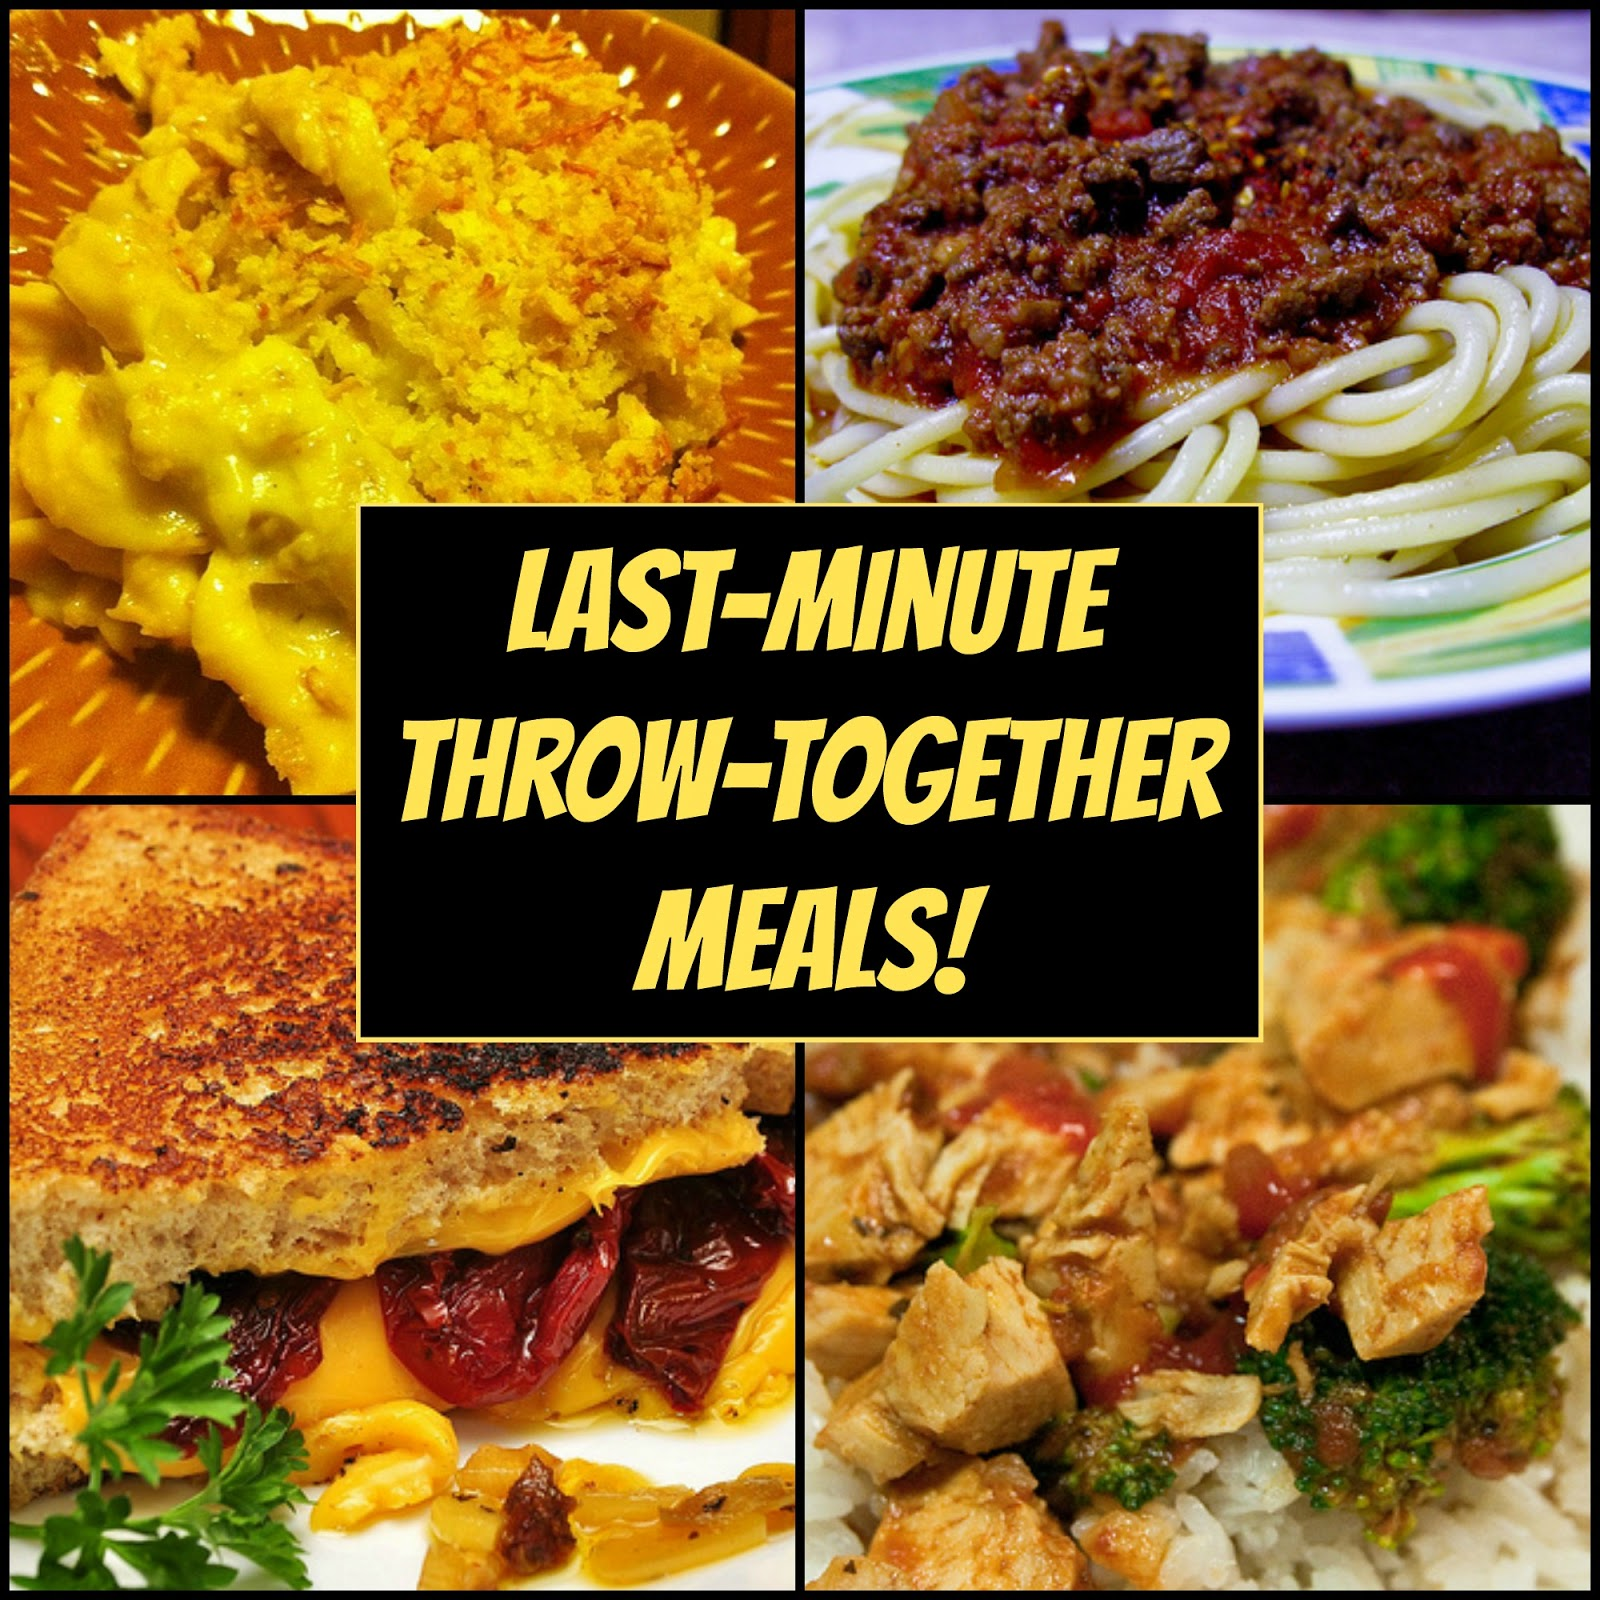 WHO CAN STAND: 4 Last-Minute Throw-Together Meals!